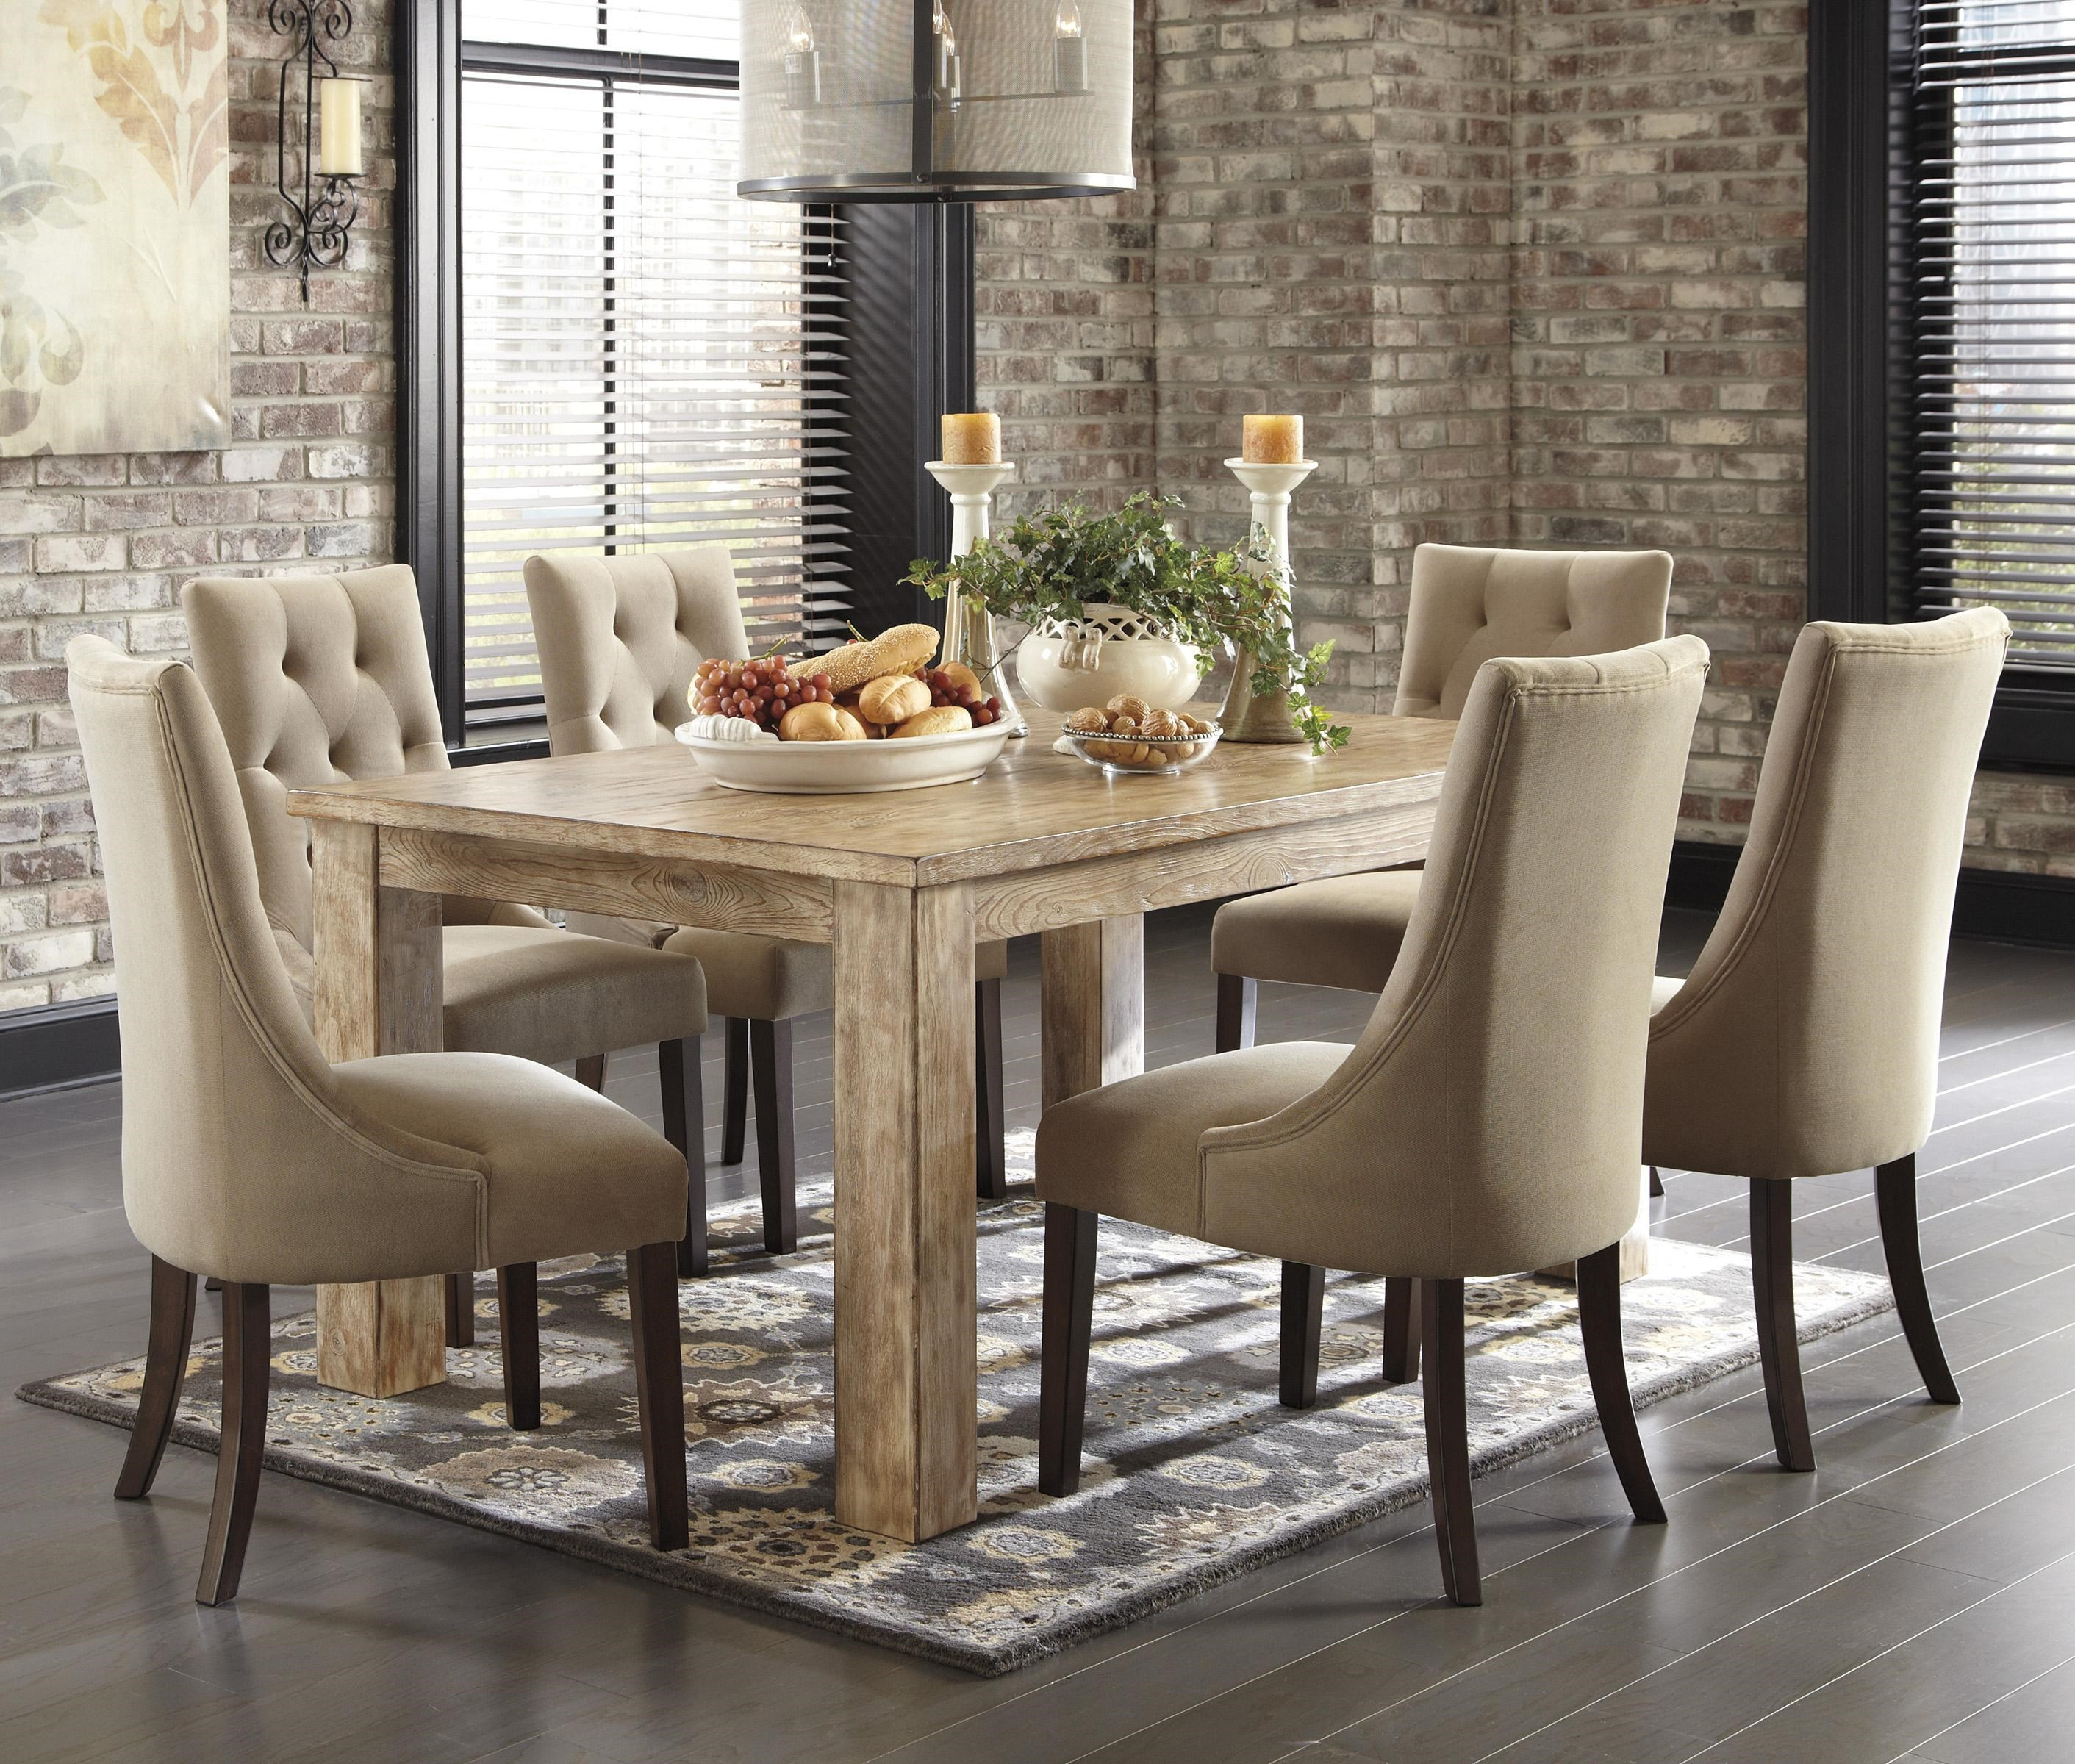 Merveilleux Signature Design By Ashley Mestler7 Piece Dining Set With Upholstered Chairs  ...